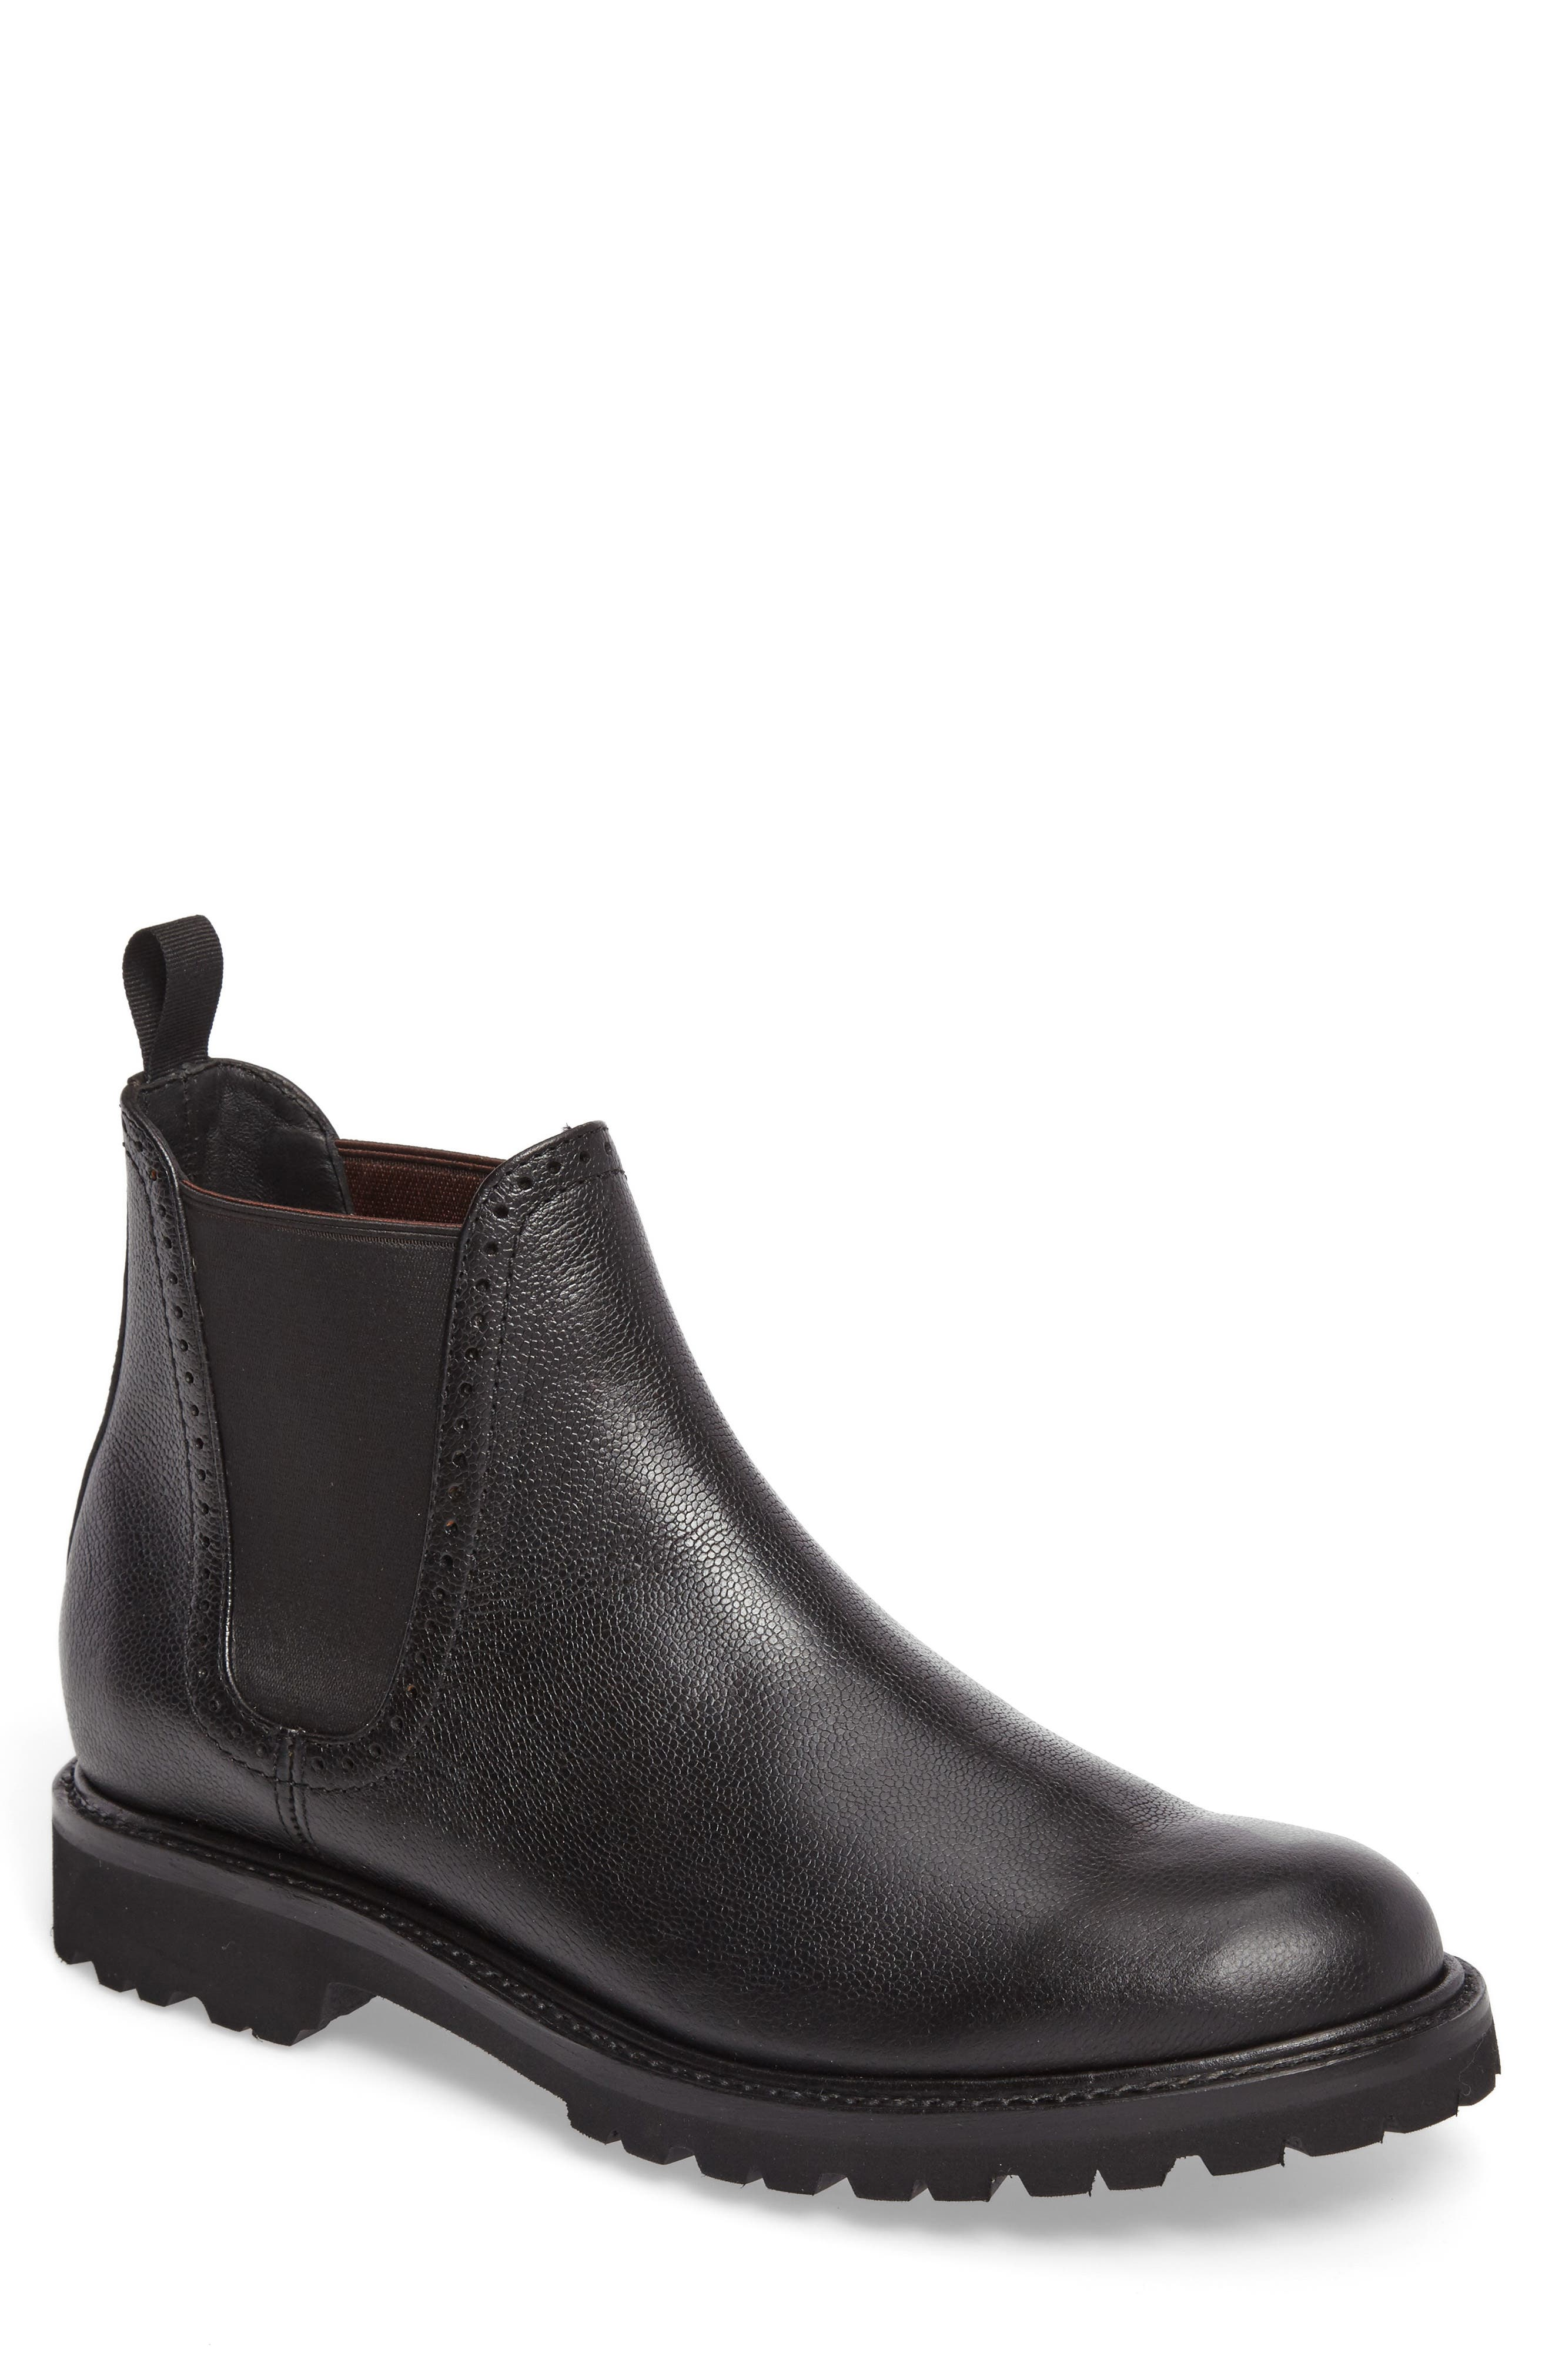 Cromwell Chelsea Boot,                         Main,                         color, 001